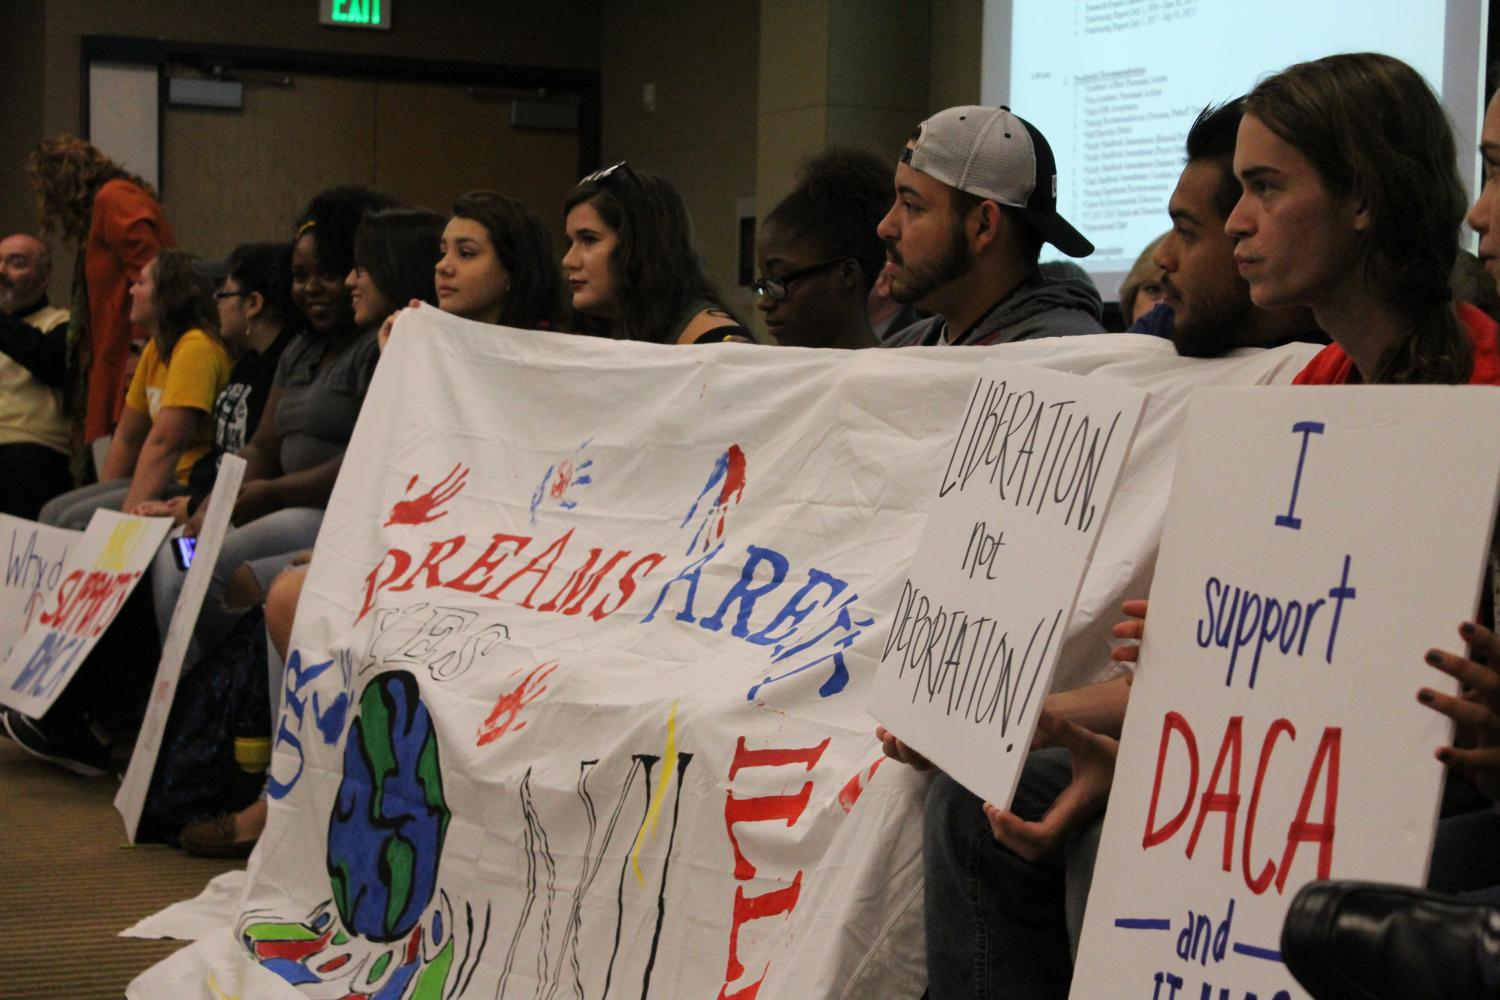 Students gathered at Board of Regents in support of DACA.